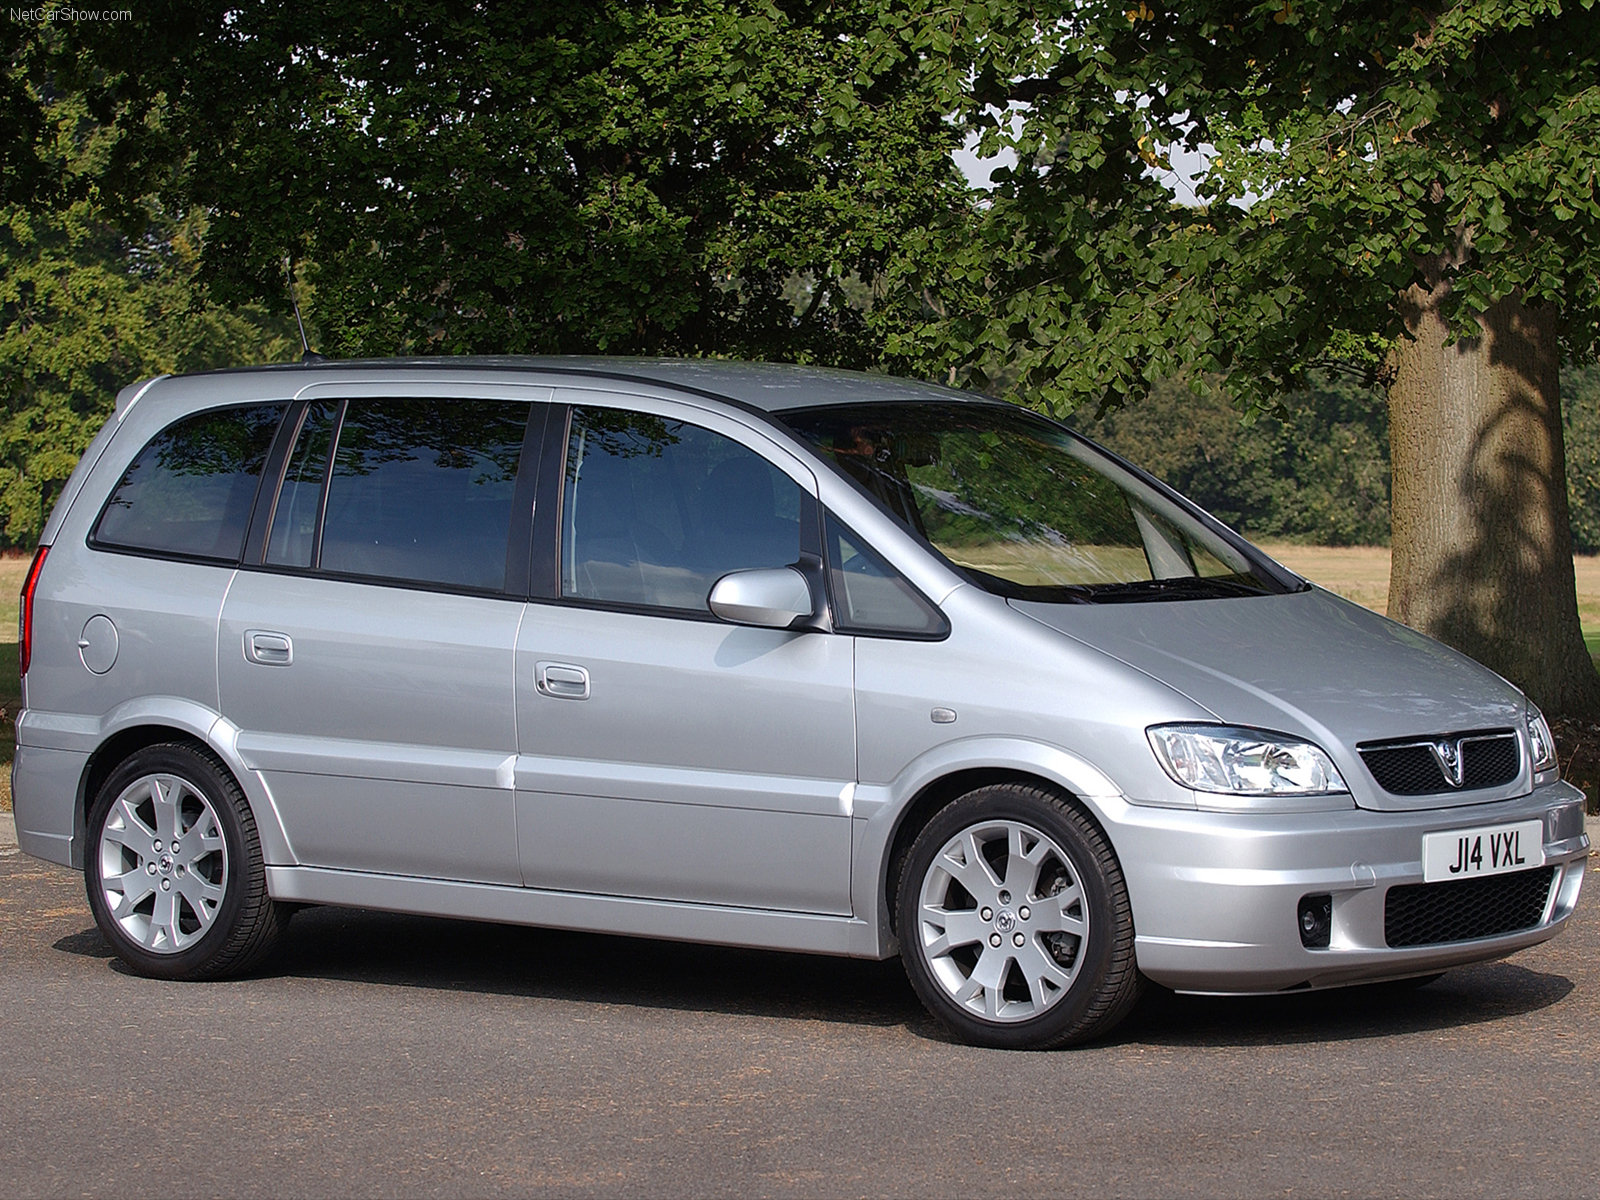 vauxhall zafira photos photo gallery page 3. Black Bedroom Furniture Sets. Home Design Ideas